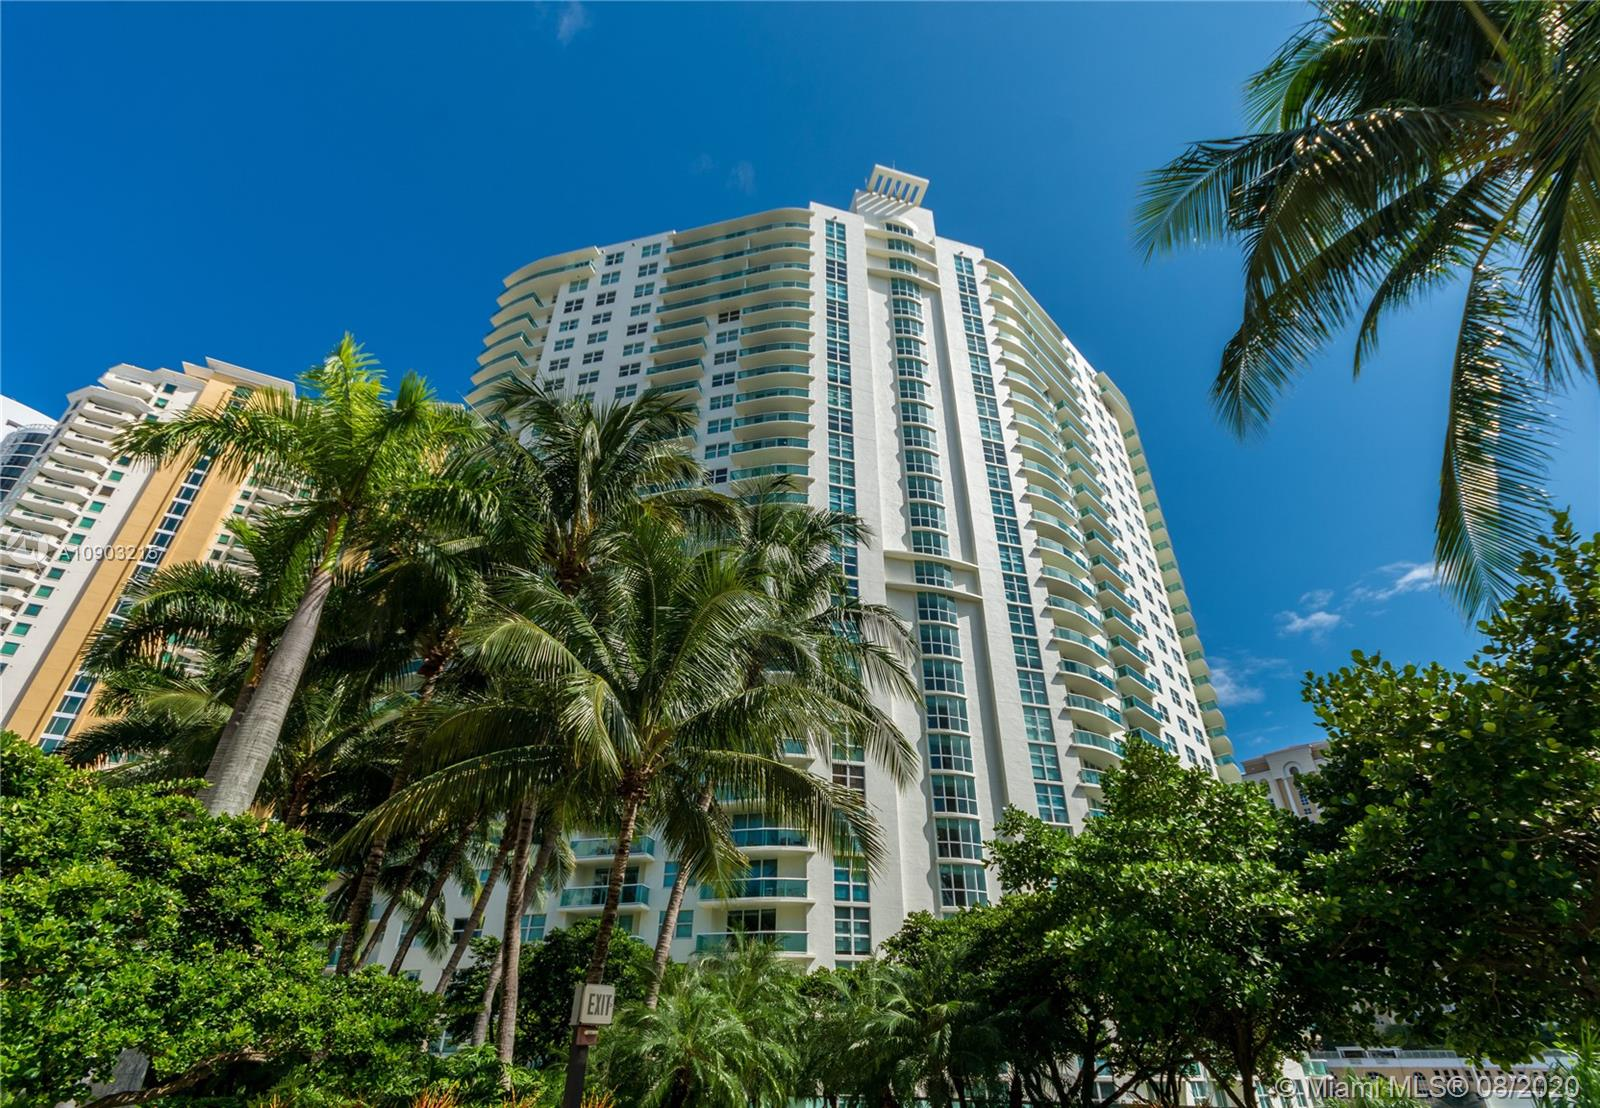 Photo of 347 N New River Dr E #1108 listing for Sale